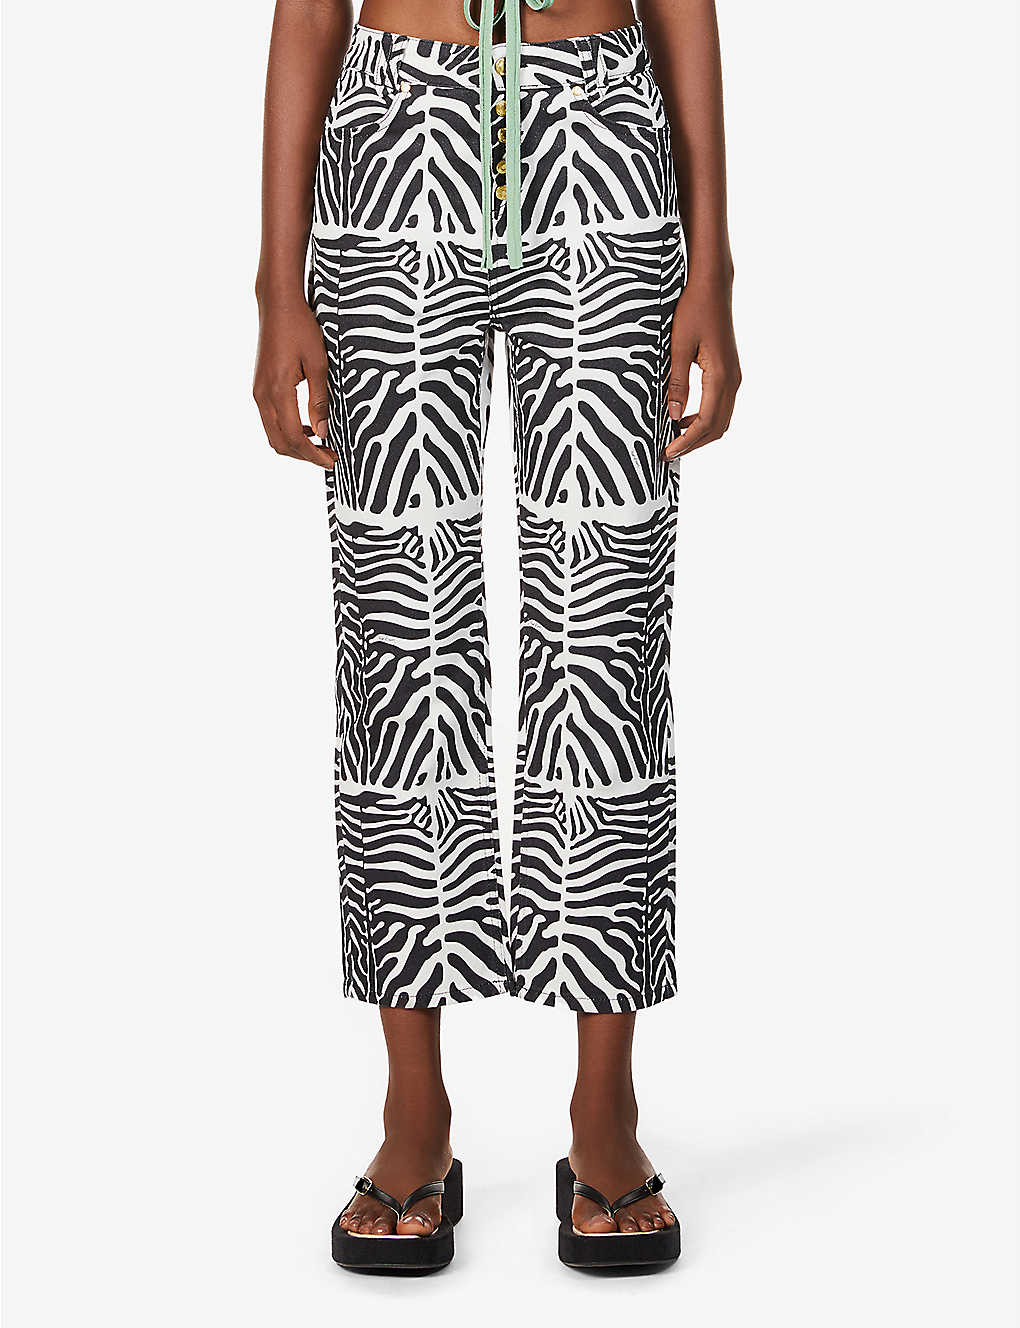 Woman wears printed black and white wide-legged jeans from House of Sunny and black chunky flip flops